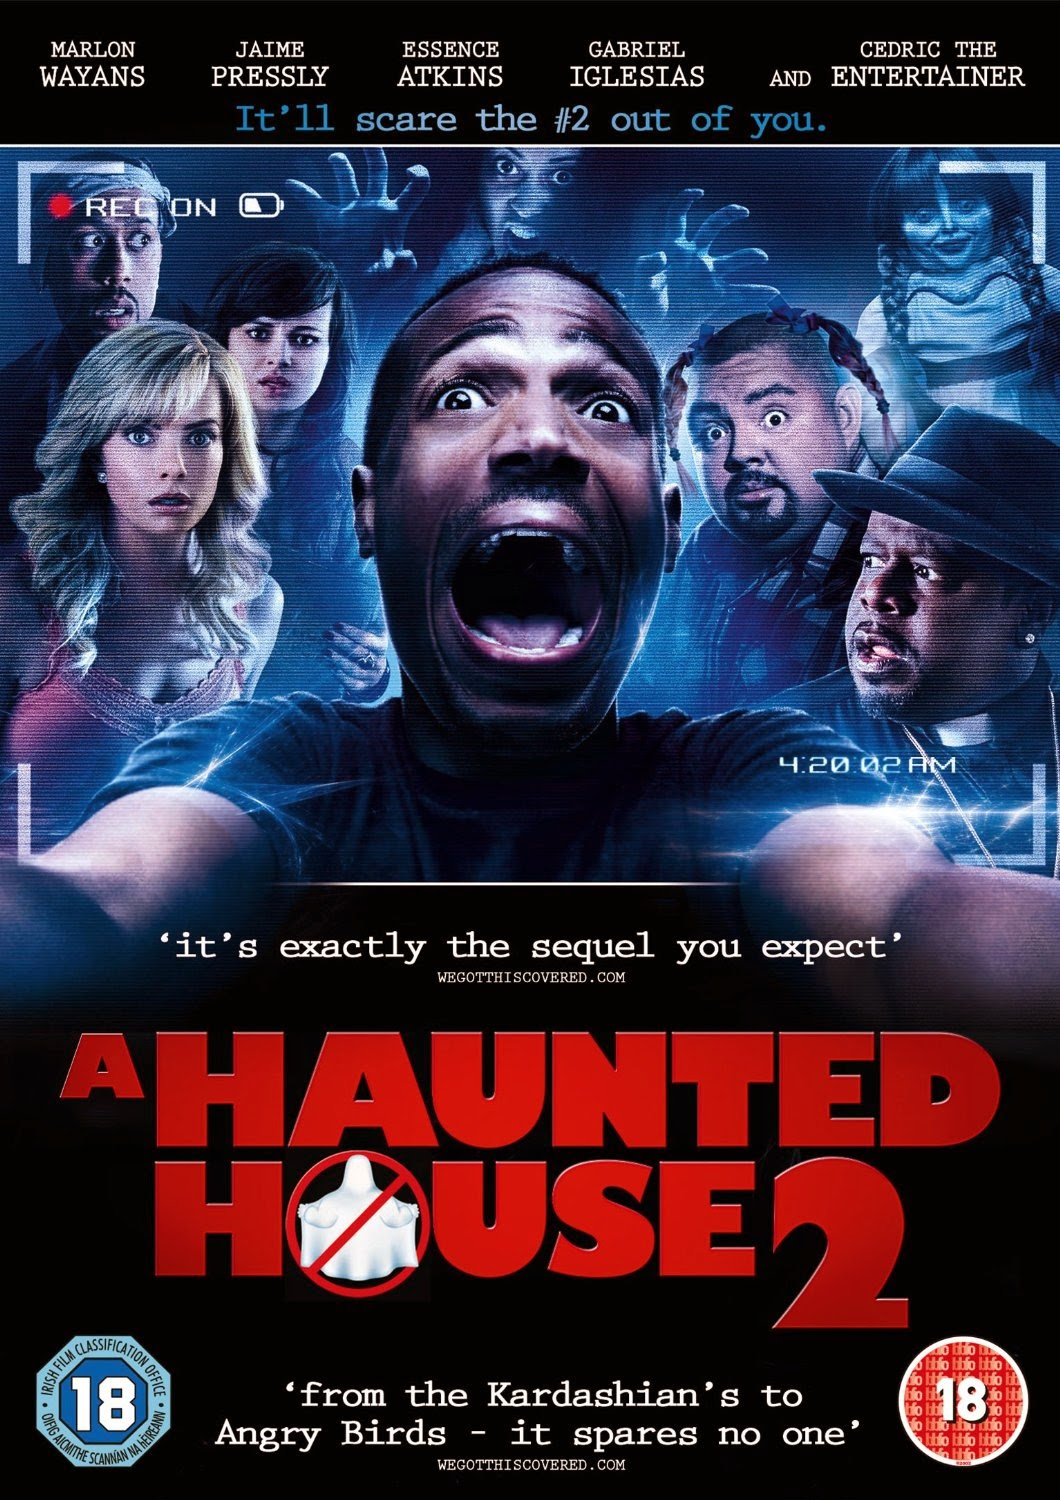 a haunted house 2 full movie free online hd